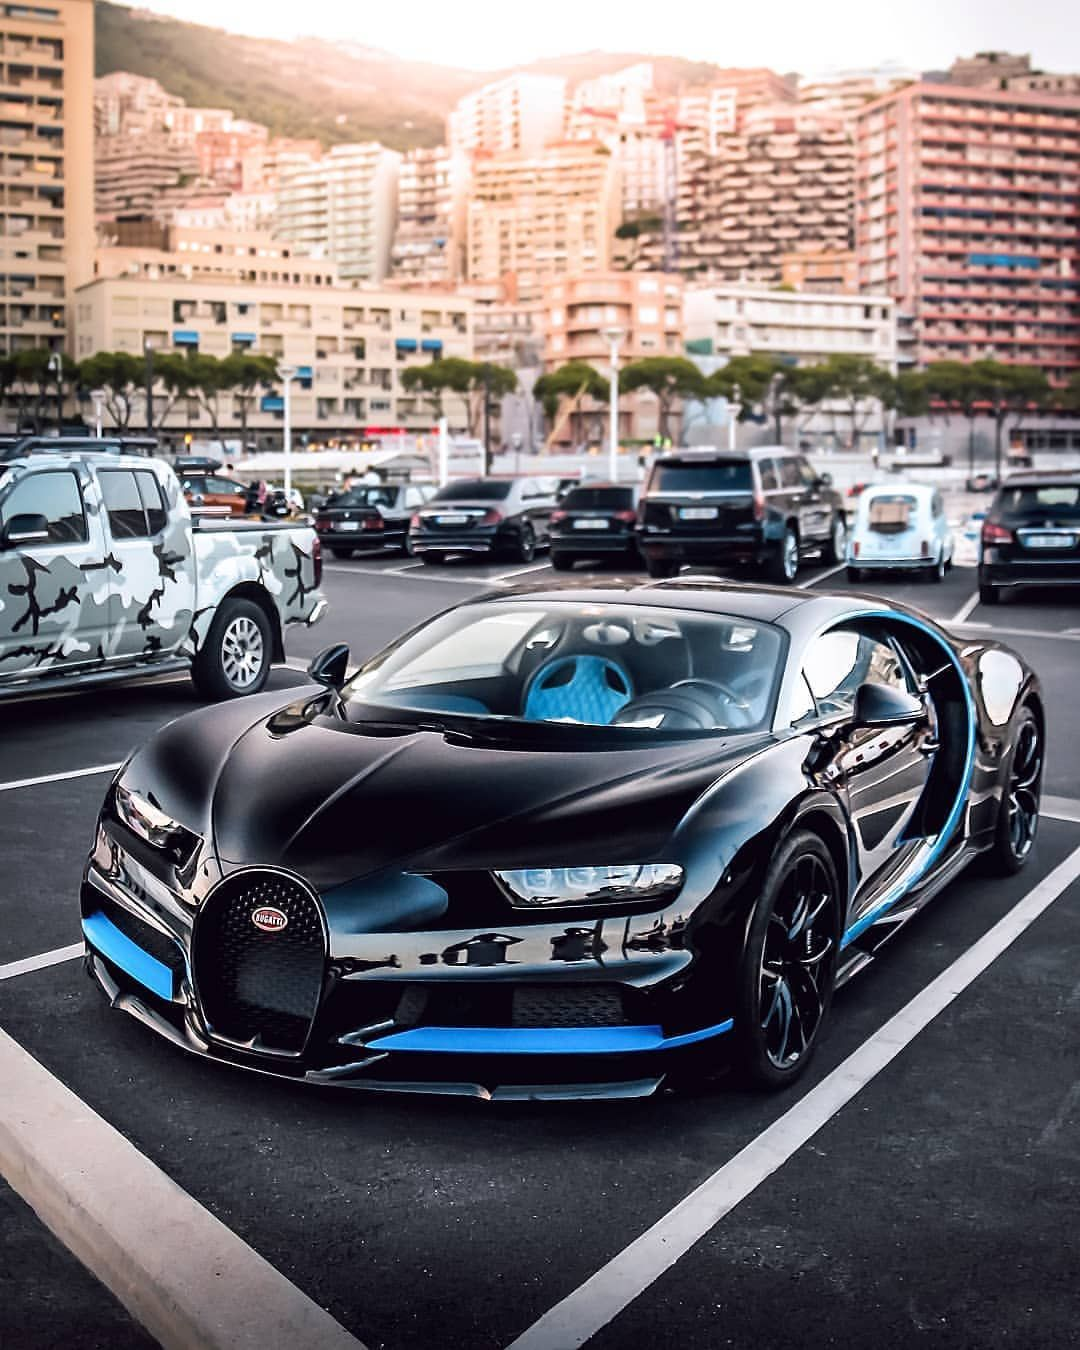 Bugatti Chiron in Monaco 📸 by balco (With images